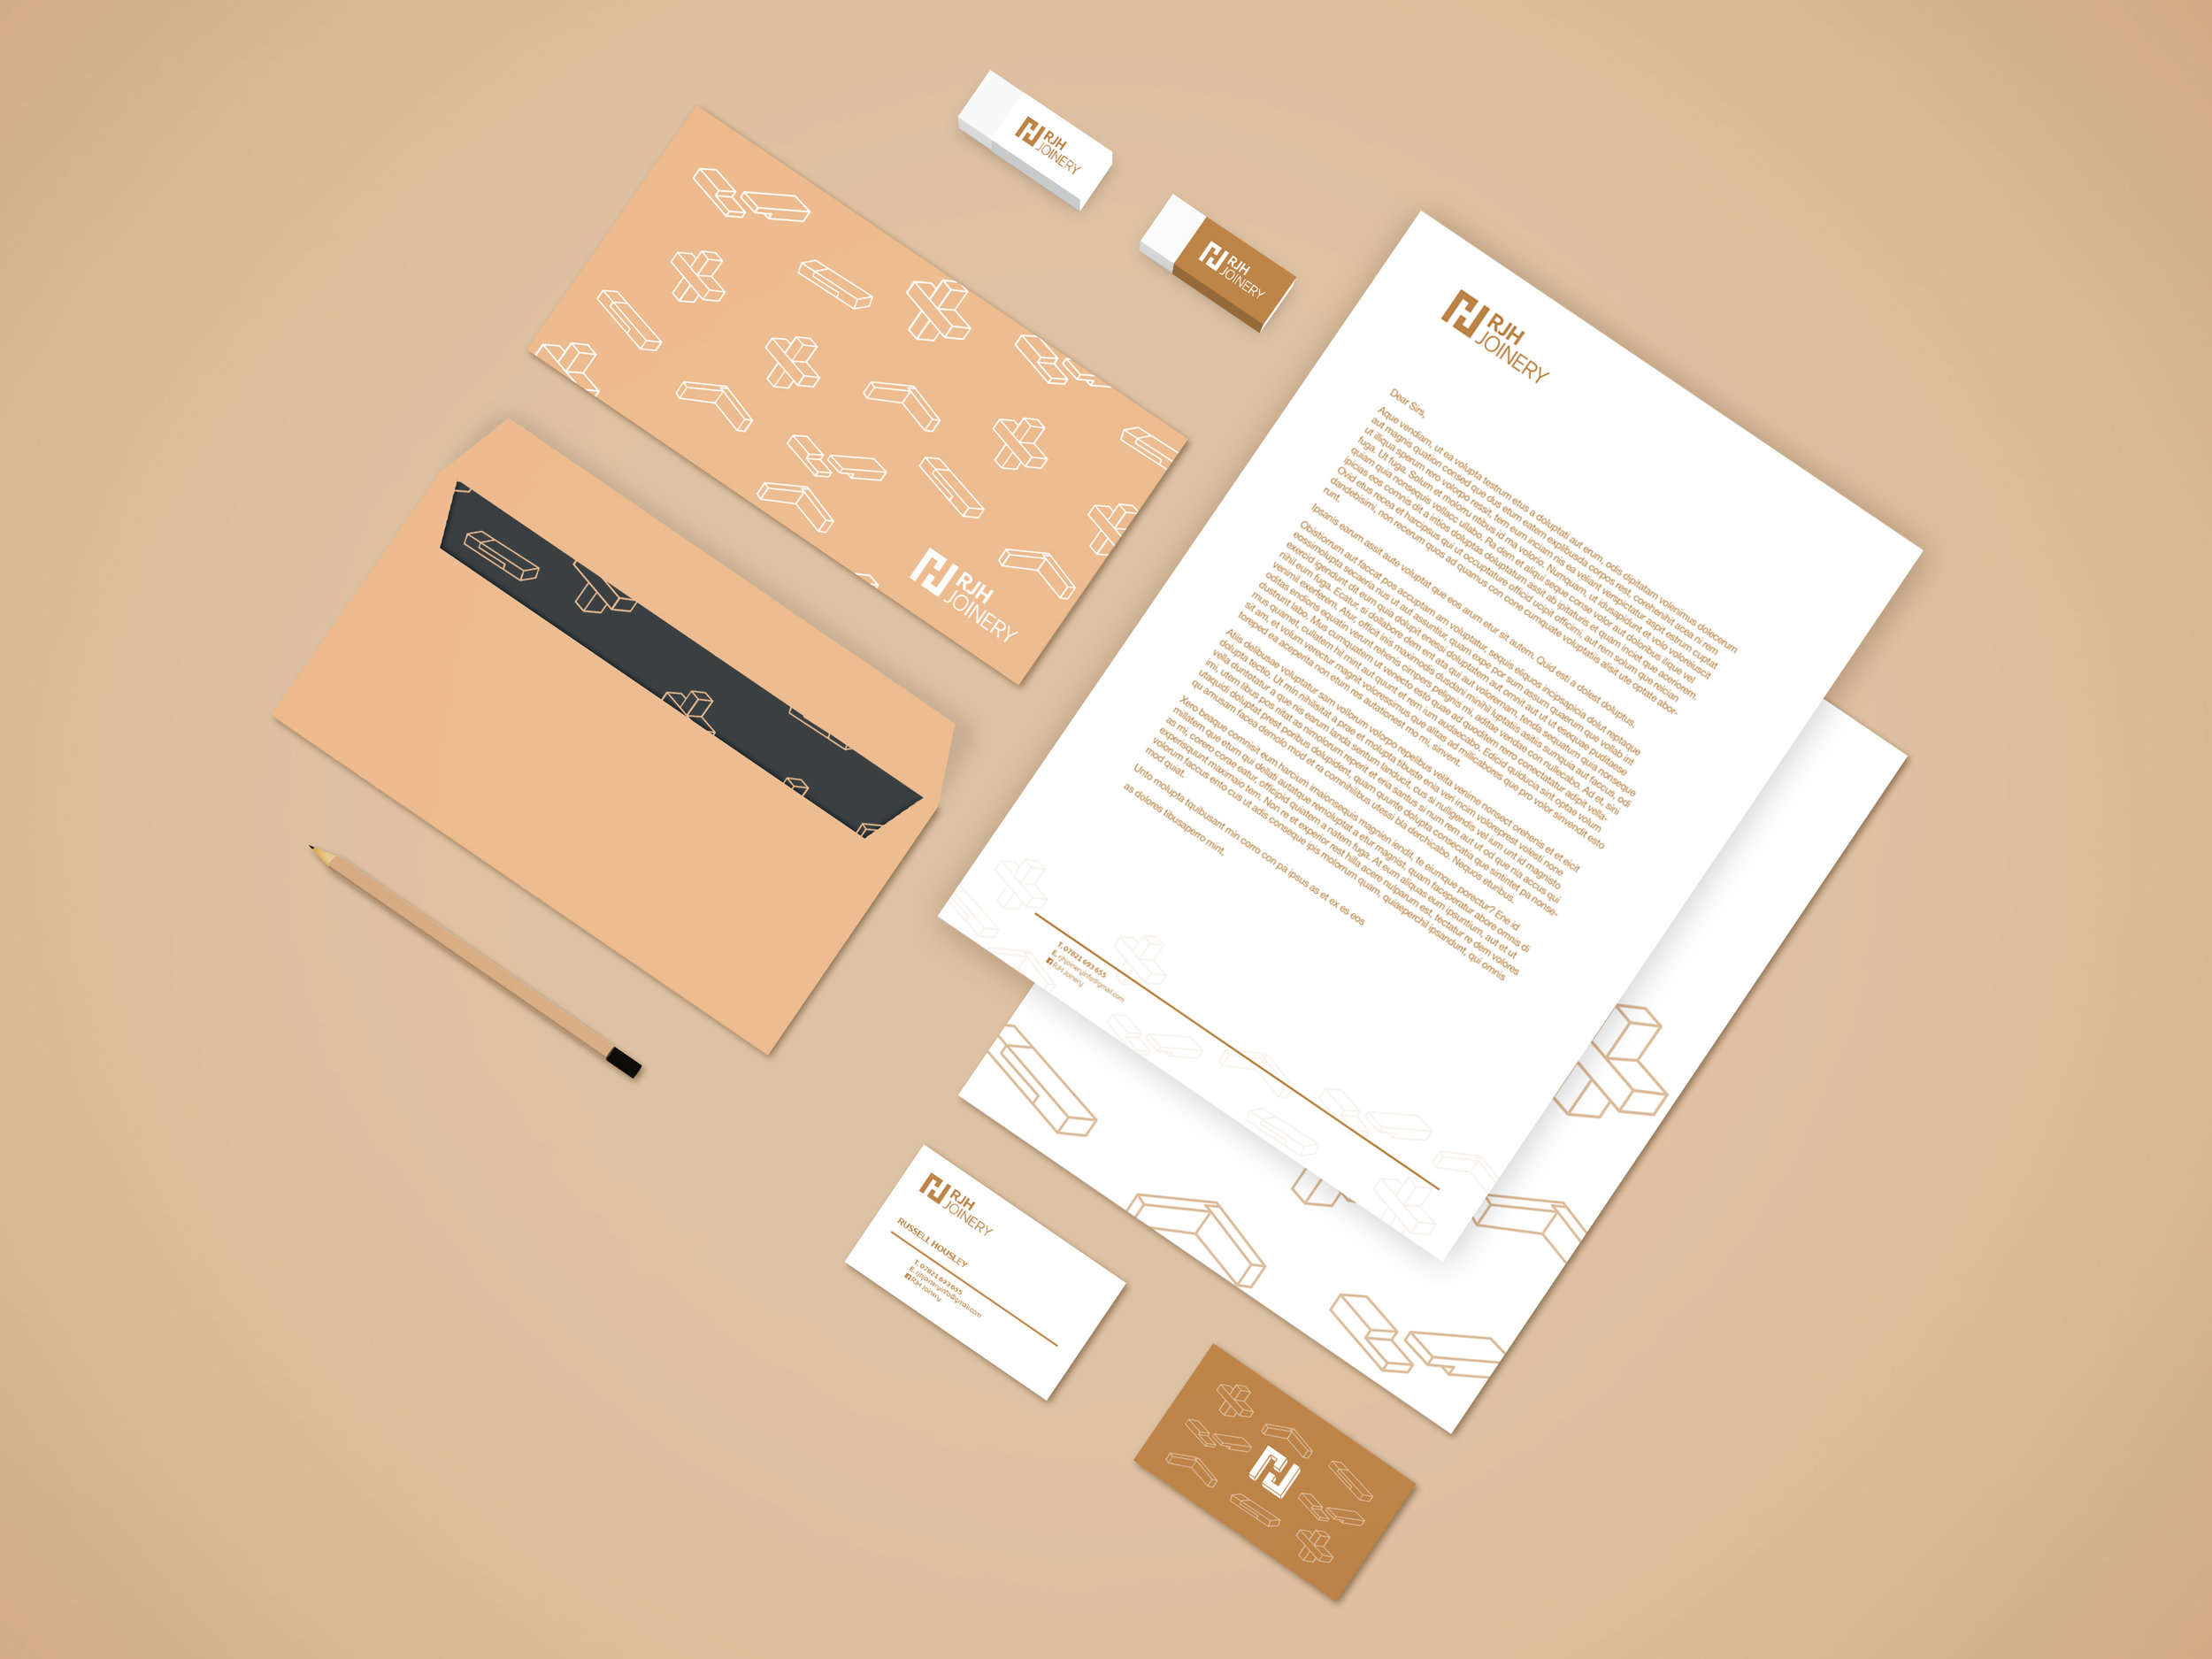 RJH Joinery Stationary - Branding Development - Graphic Design Sheffield